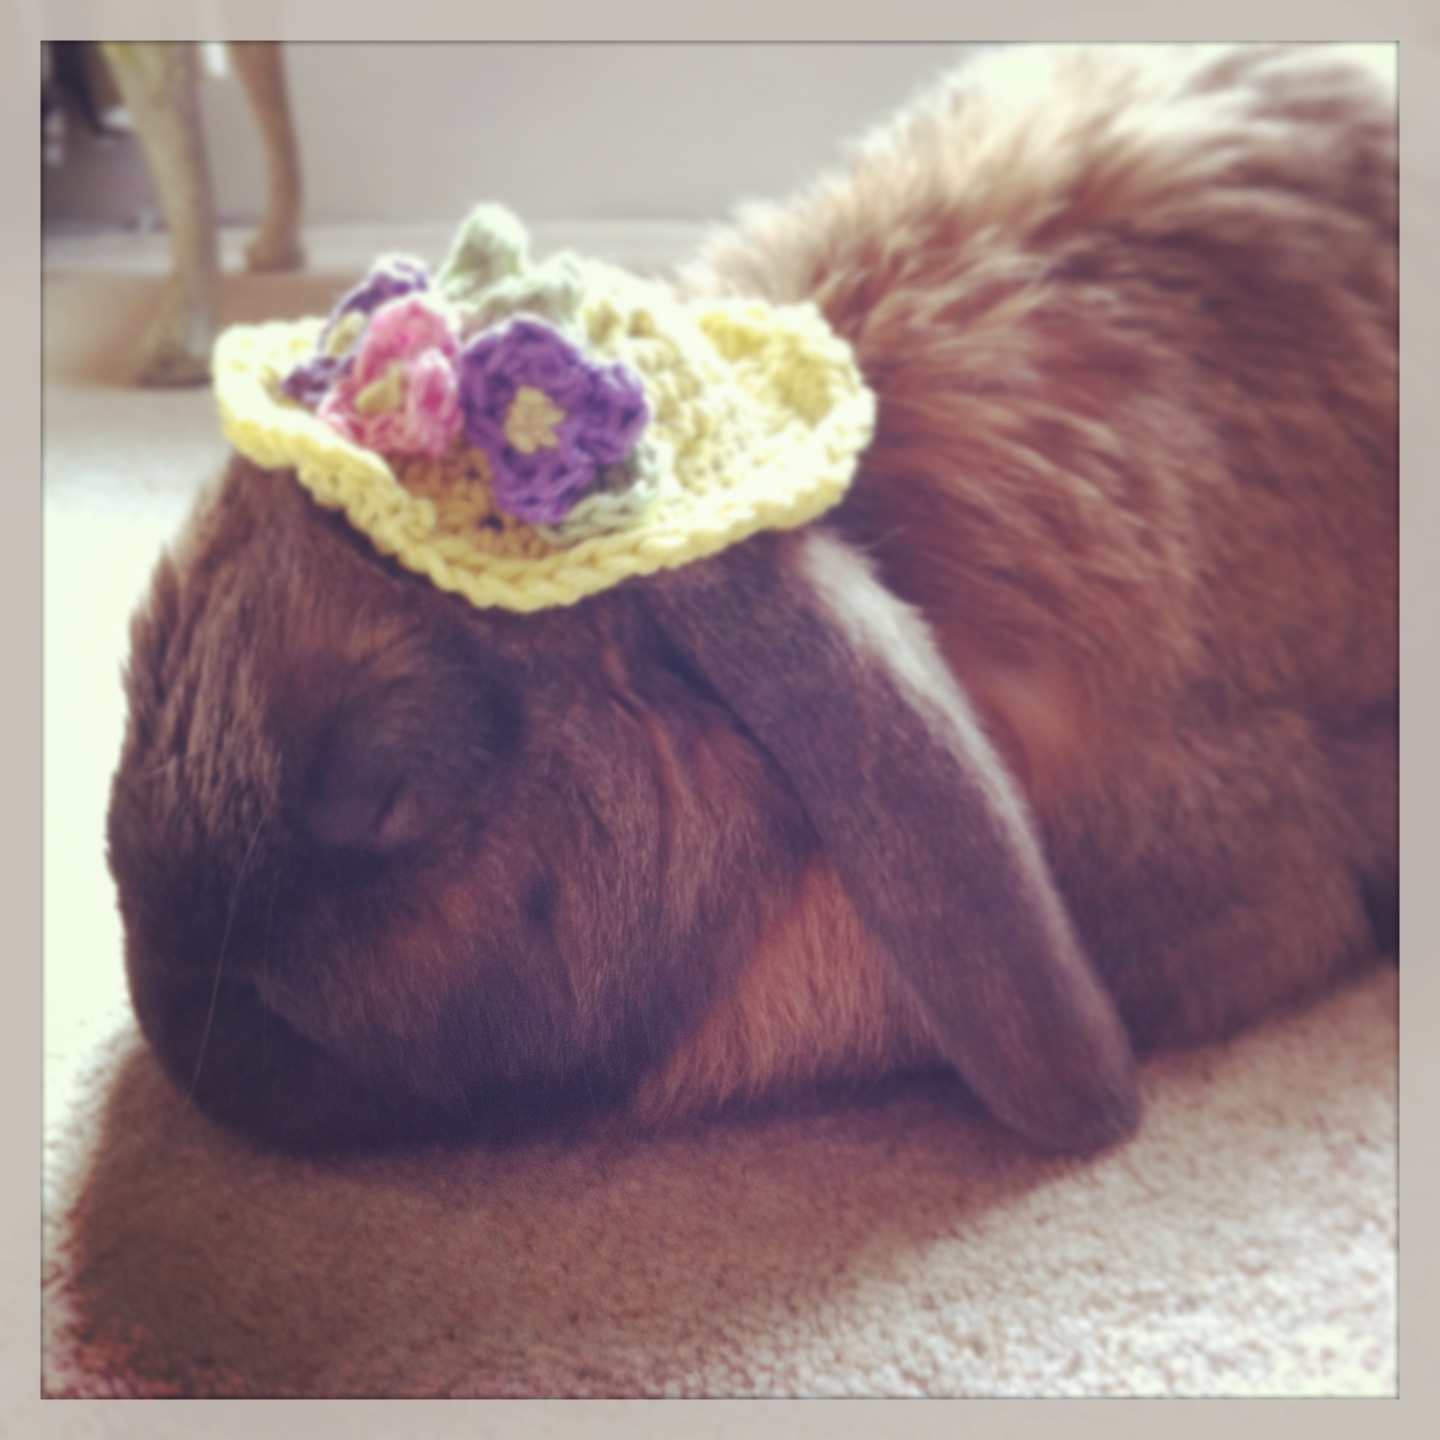 Bunny Falls Asleep in His Easter Hat After a Long Day